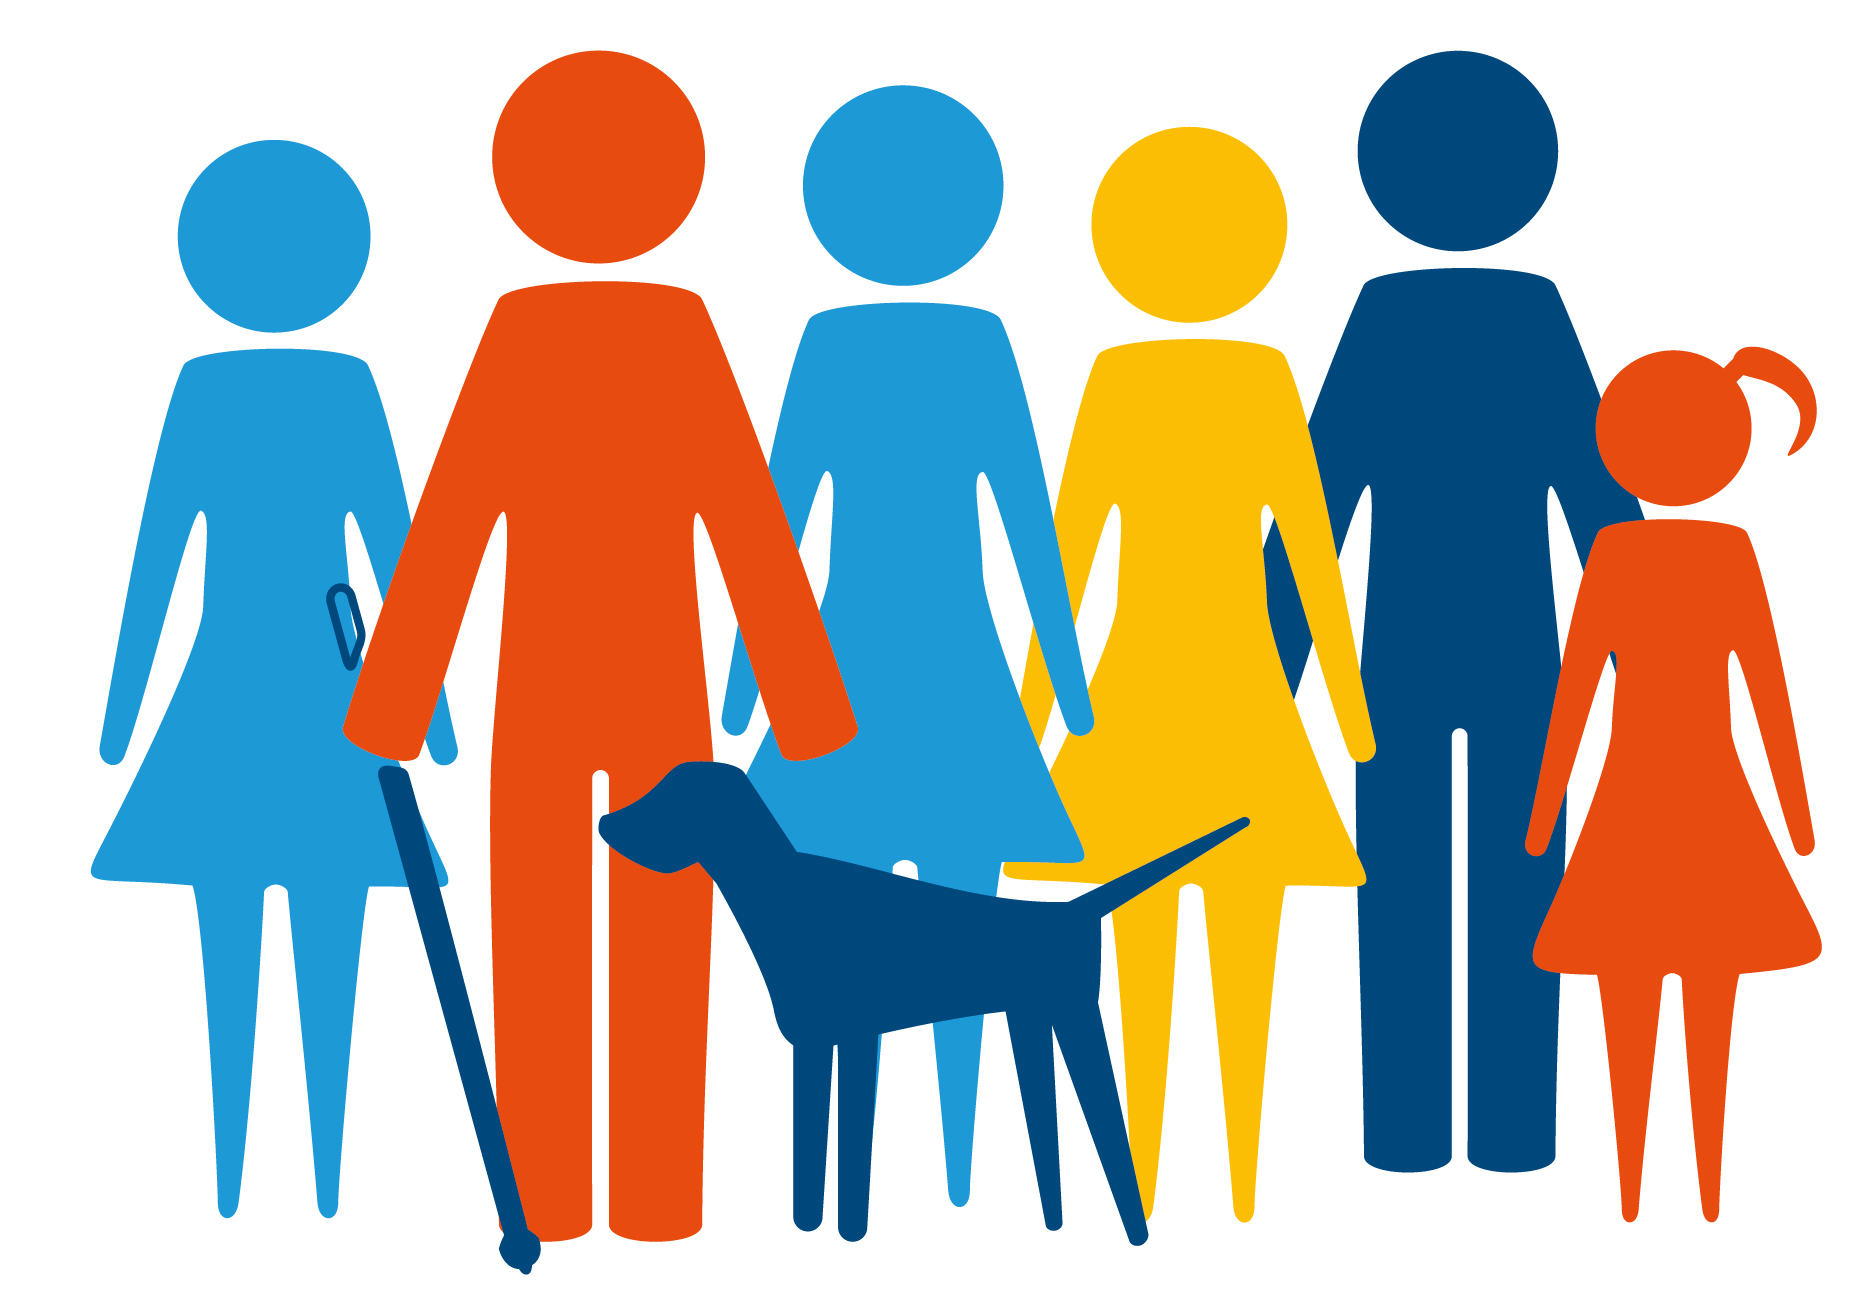 6 people and a dog all cartoon and coloured different colours like: light blue, orange, dark blue, yellow, red